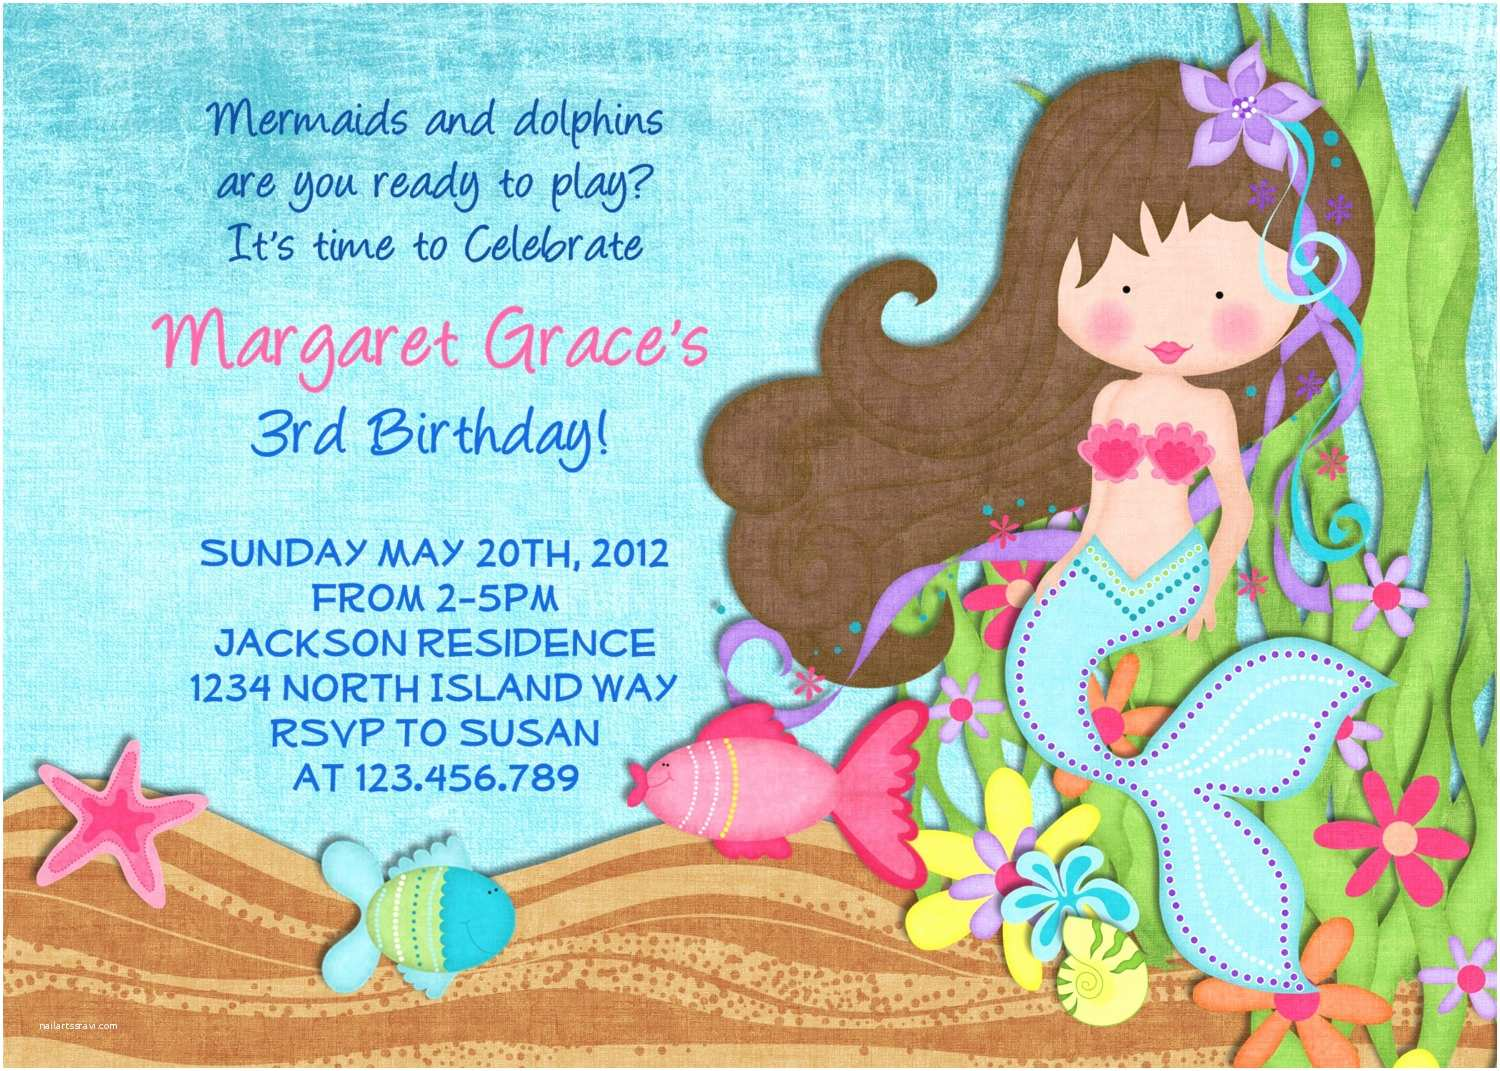 Little Mermaid Party Invitations Mermaid Invitation Mermaid Party Under the Sea Mermaid